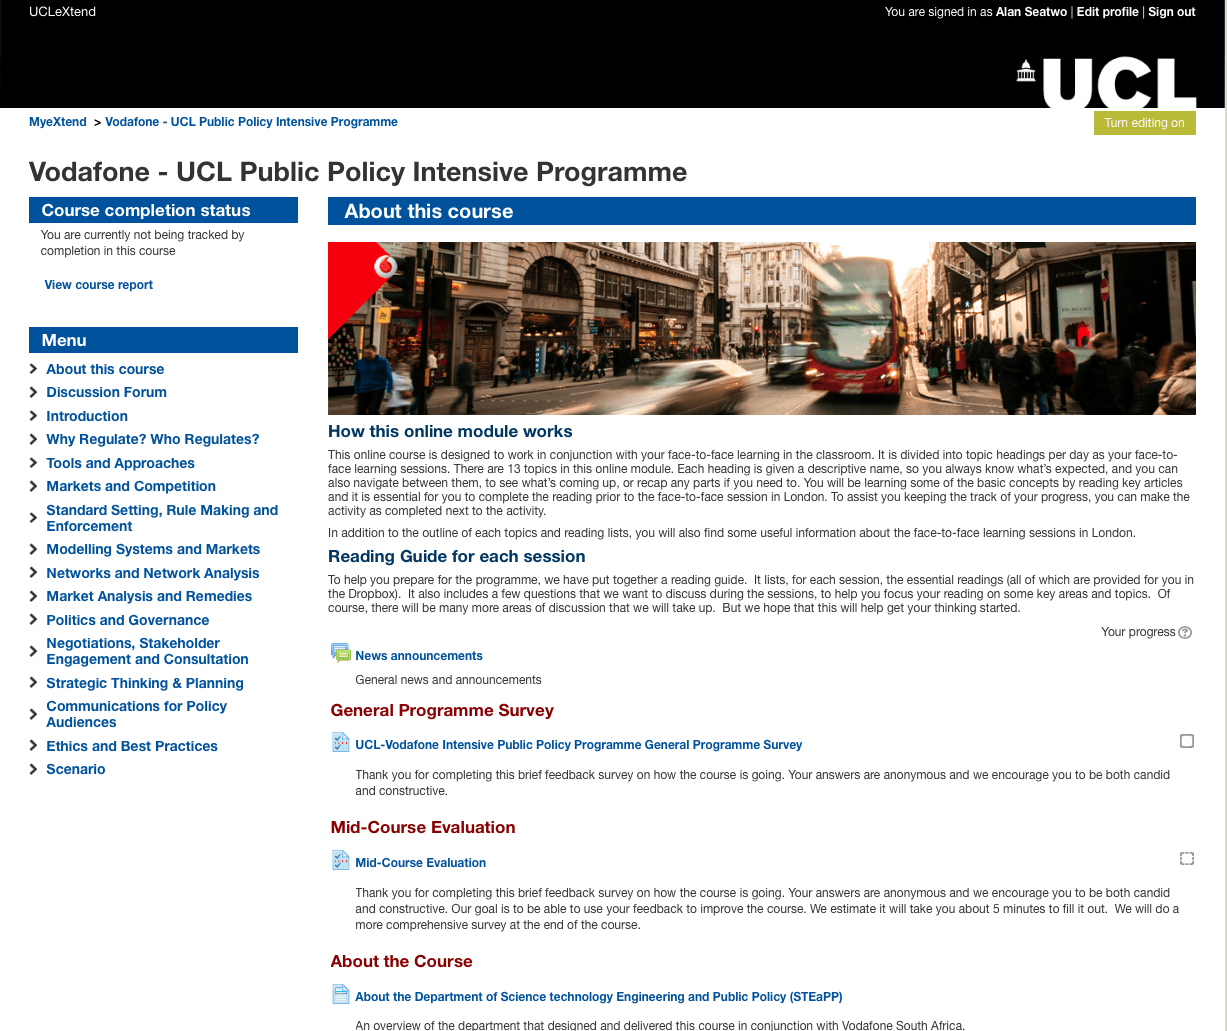 Vodafone UCL Public Policy Intensive Programme UCL eXtend course